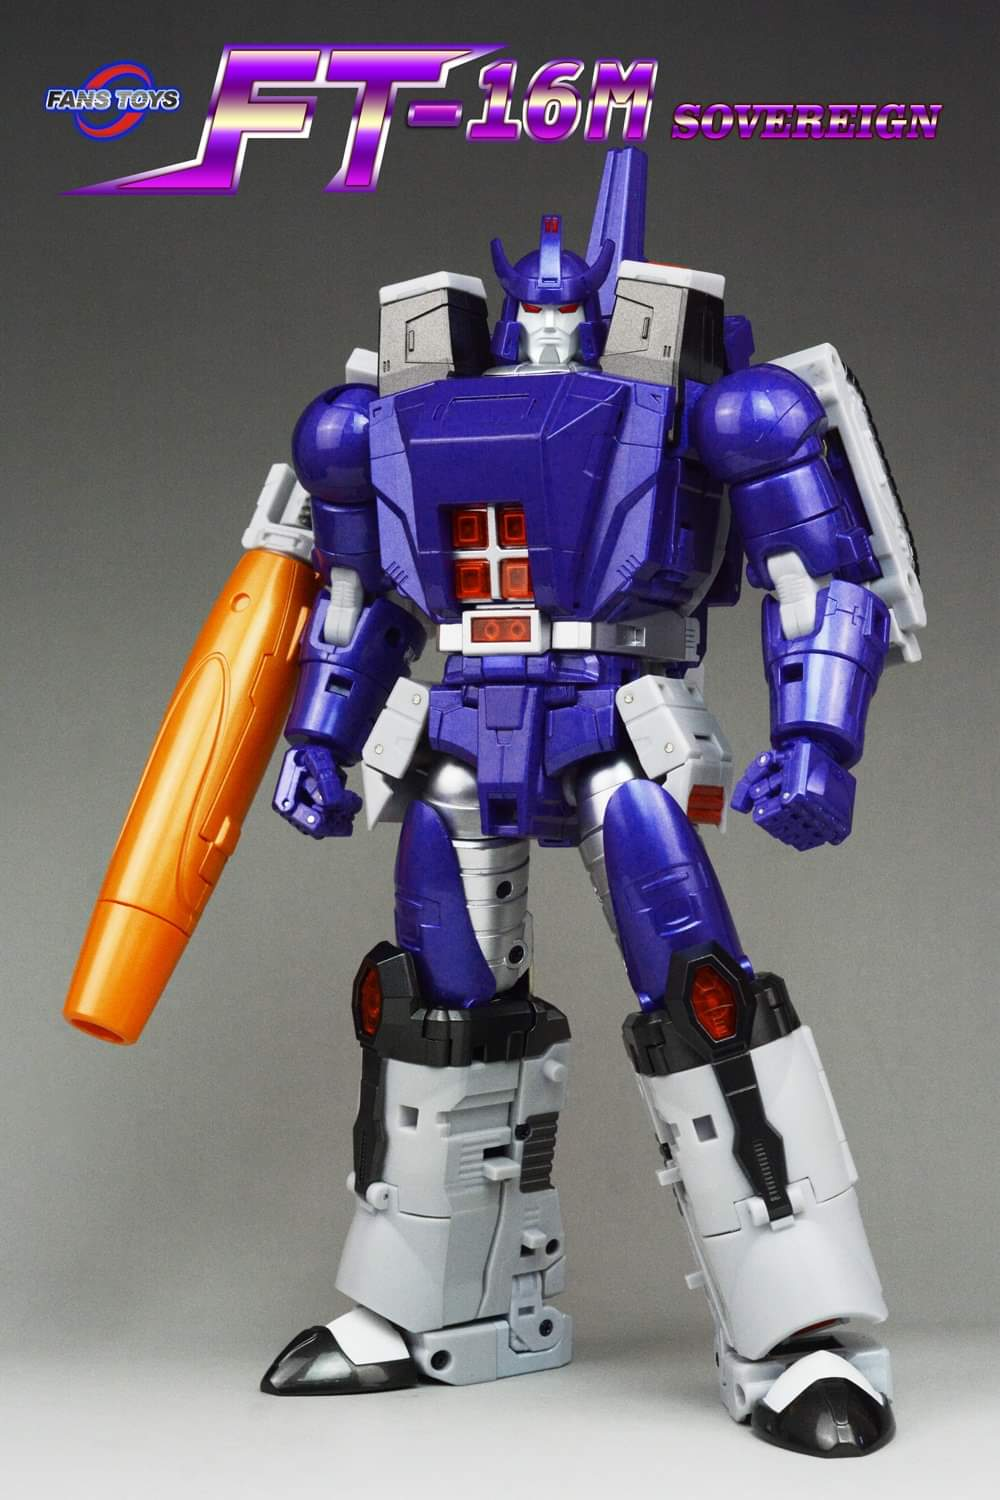 [Fanstoys] Produit Tiers - Jouet FT-16 Sovereign - aka Galvatron - Page 4 CHh2XAPl_o